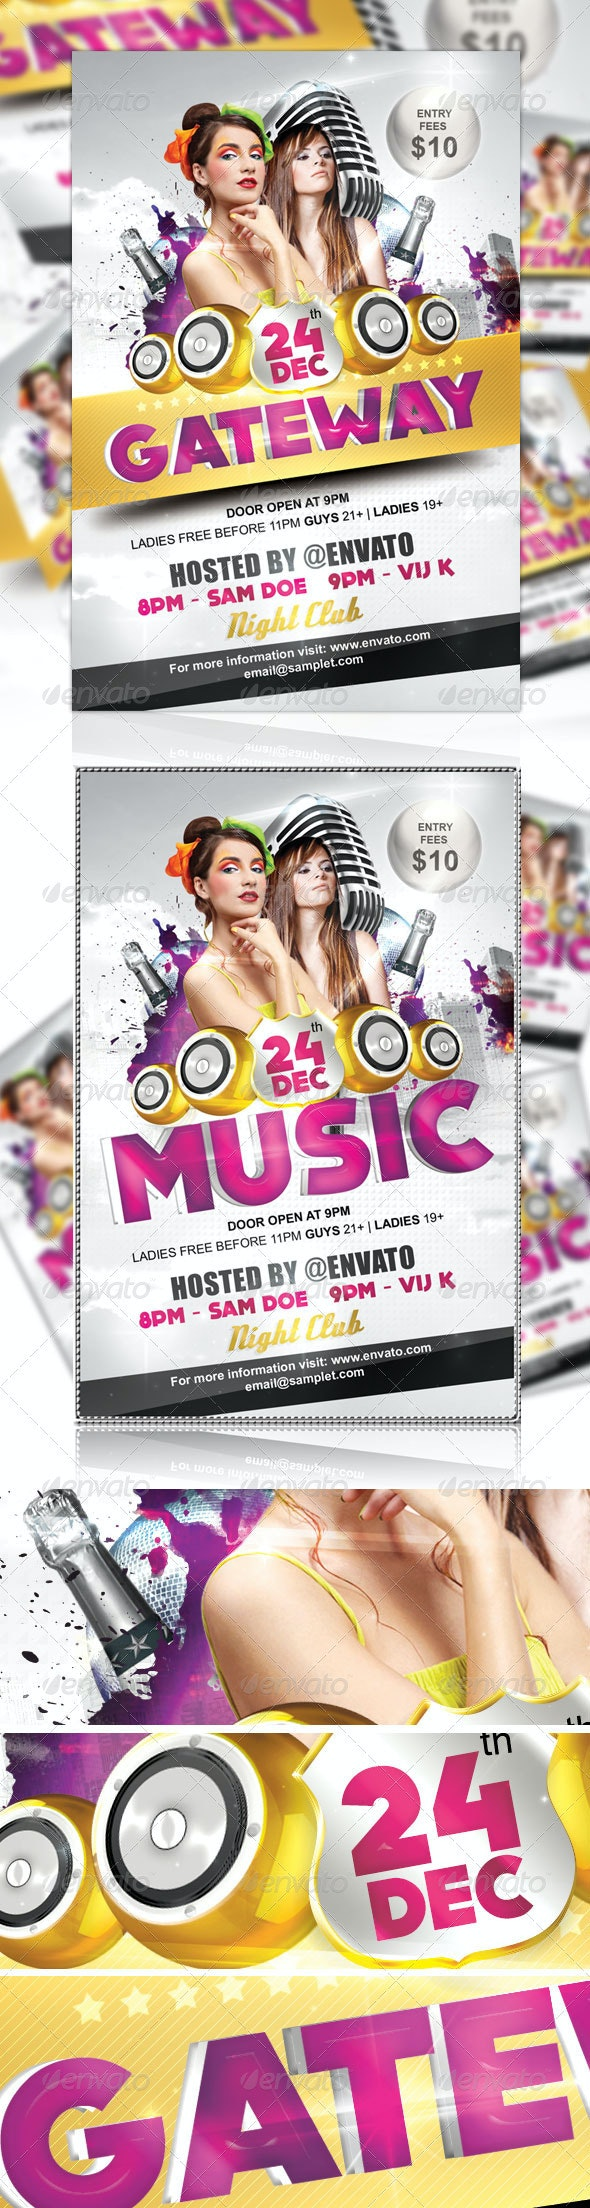 Gateway Party Flyer - Clubs & Parties Events